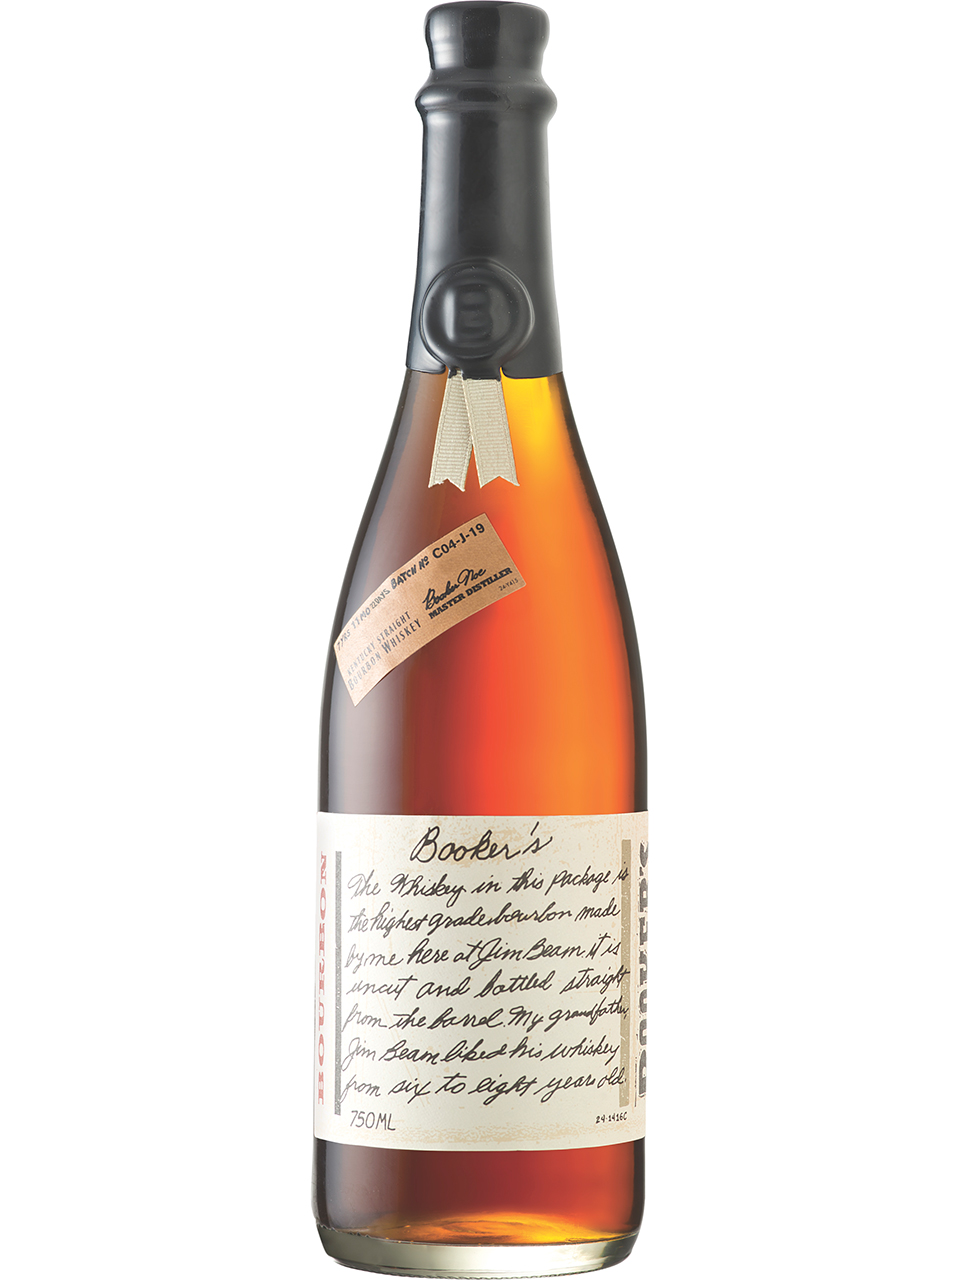 Booker's True Barrel Kentucky Straight Bourbon